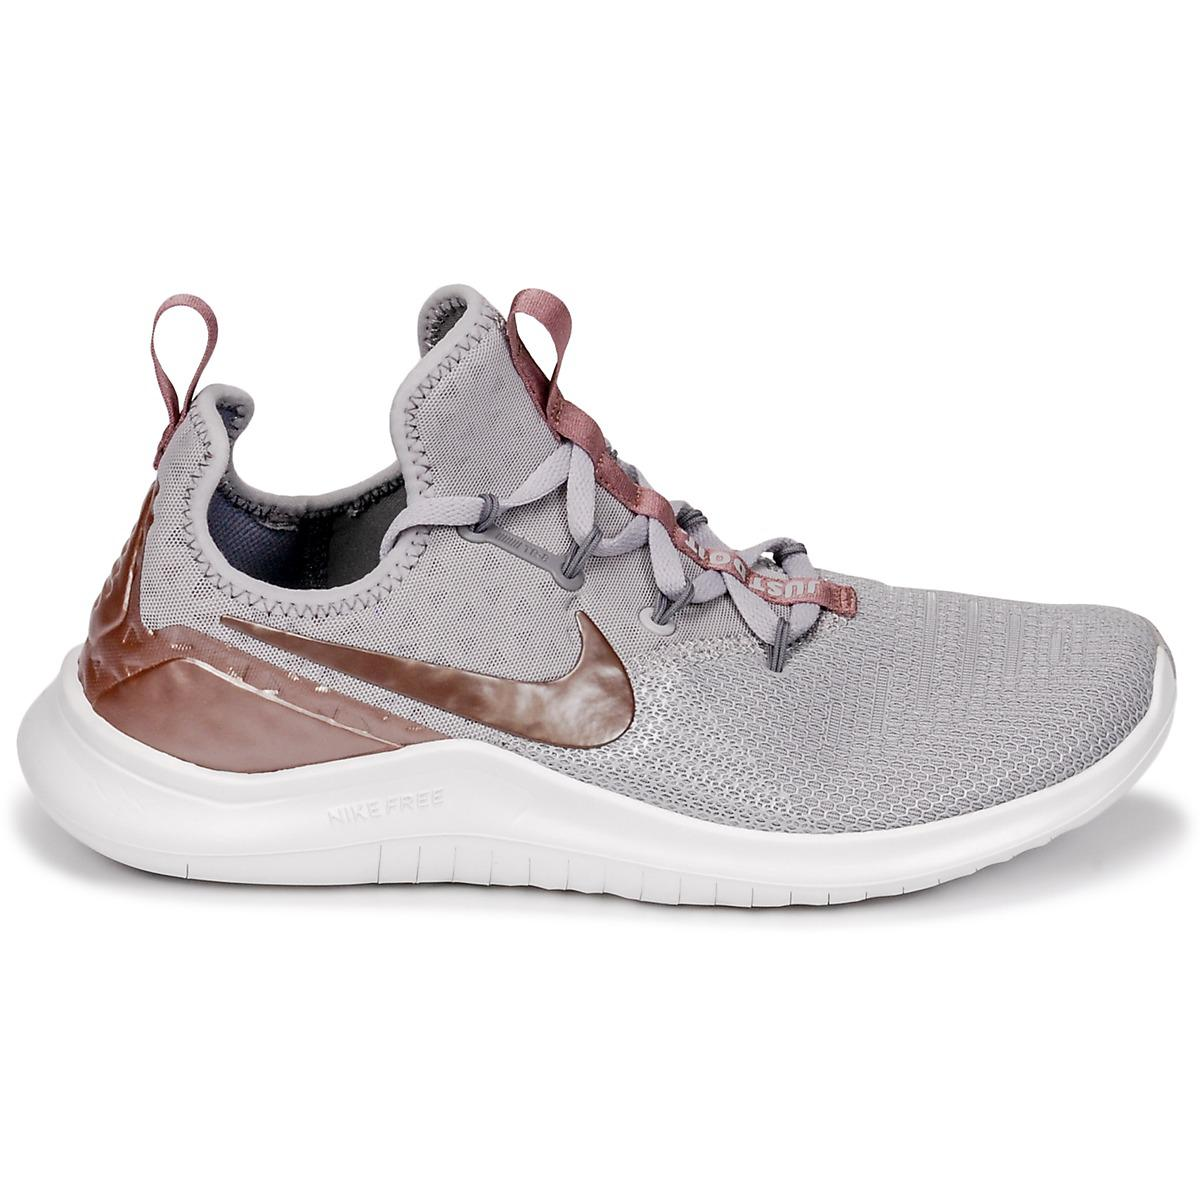 cec7225aeb147 Nike - Gray Free Trainer 8 Lm Trainers - Lyst. View fullscreen